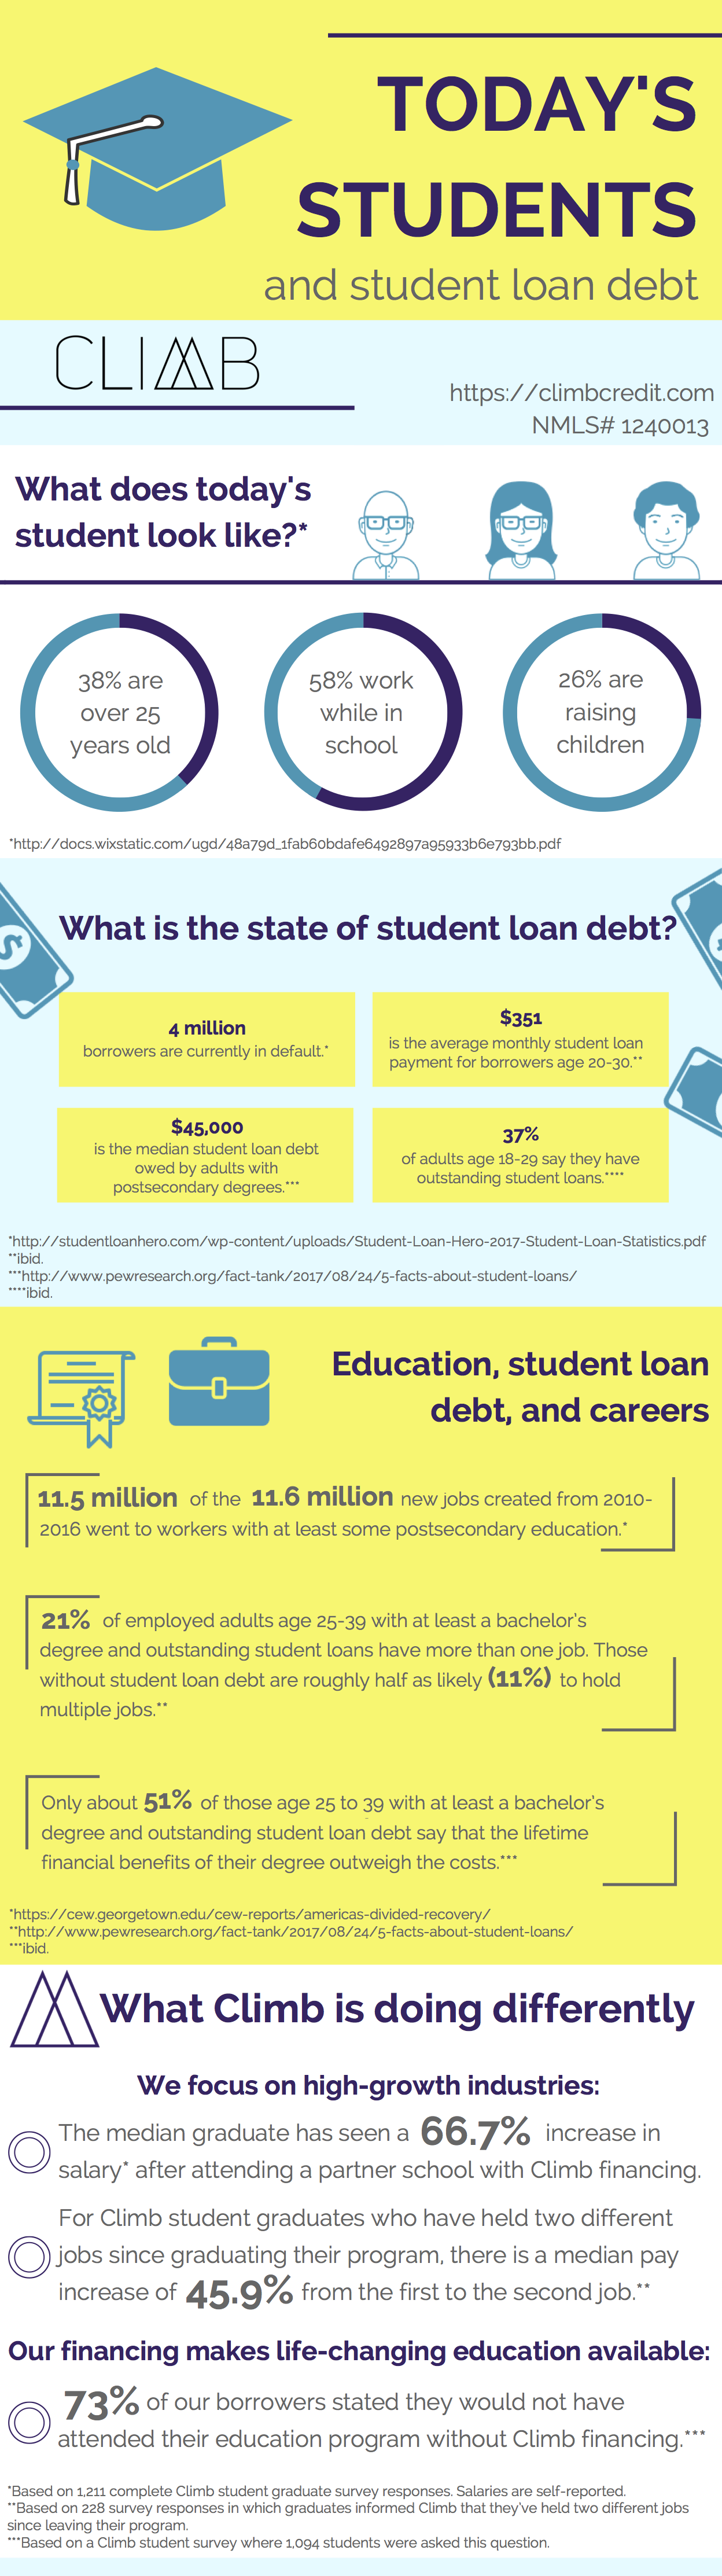 Today's Students and Student Loans